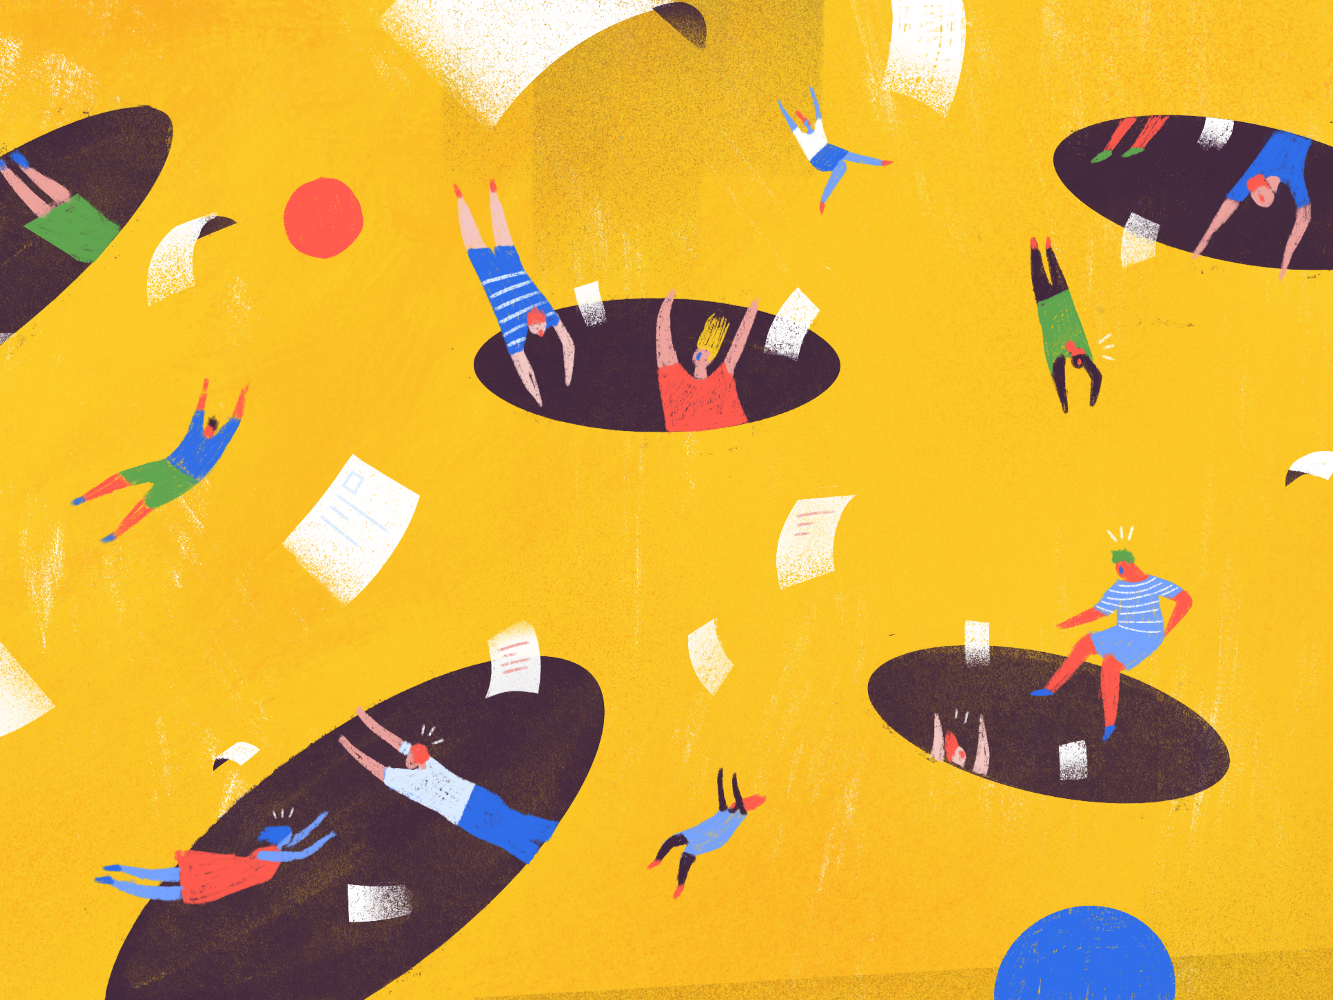 The 8 Biggest Mistakes to Avoid When Applying For a Remote Job chaos hole flying remote editorial todoist doist twist illustration productivity